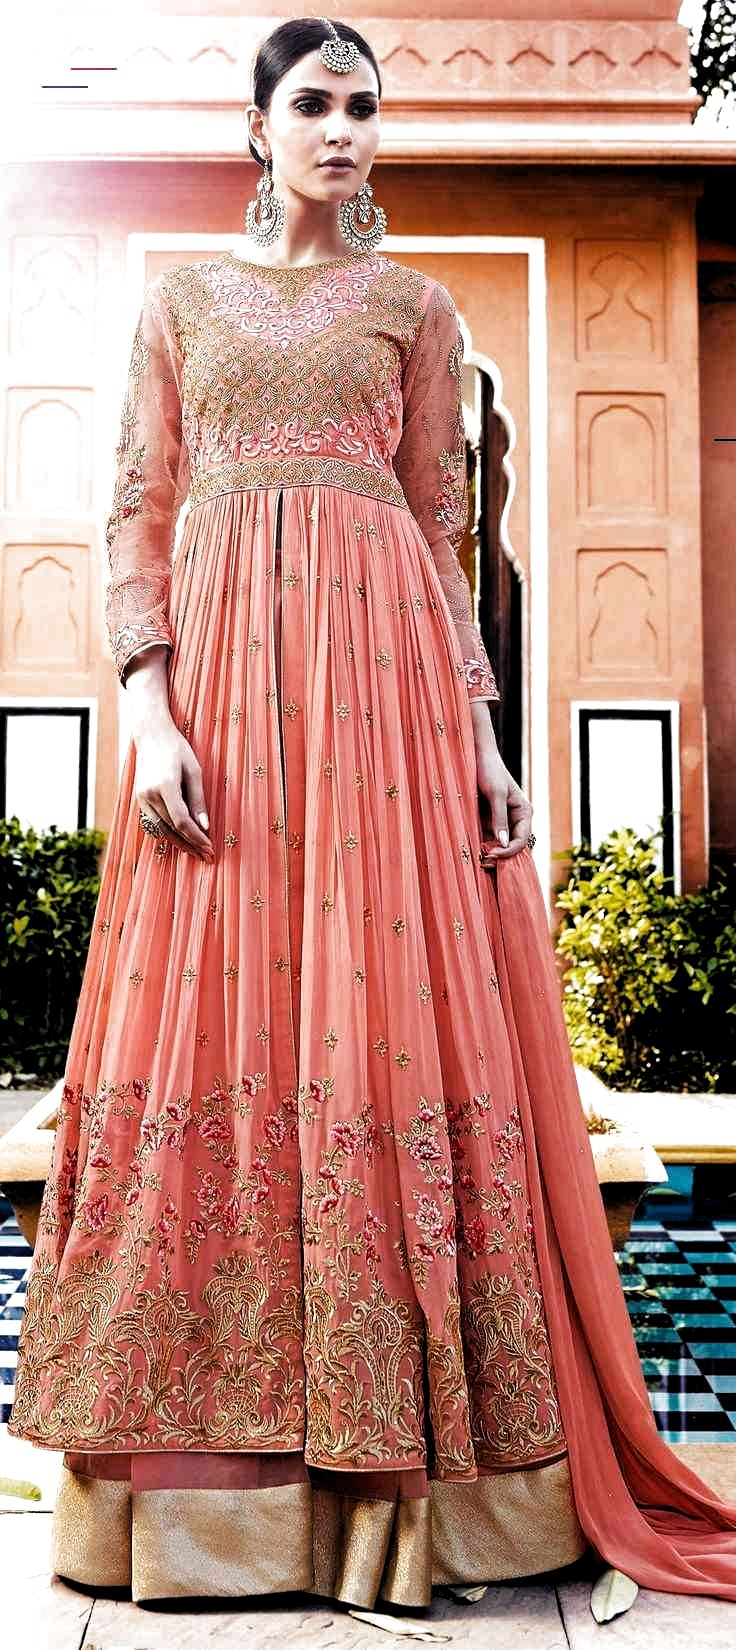 hairstyle for lehenga simple #hairstyle #for #lehenga #hairstyle hairstyle for in 2020 | Lehenga ...